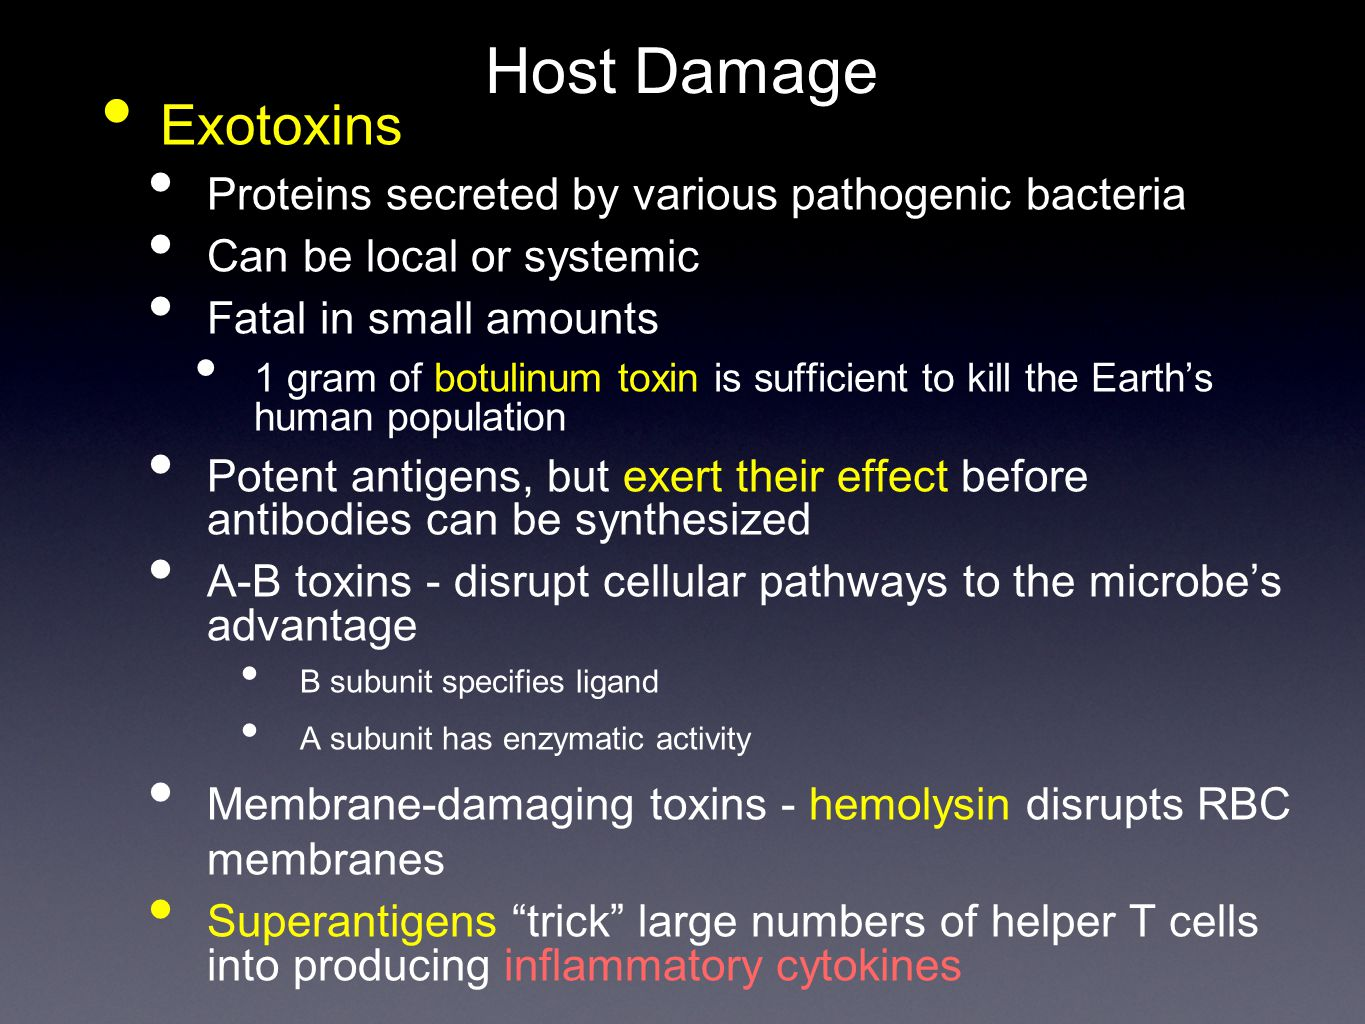 Host Damage Exotoxins Proteins secreted by various pathogenic bacteria Can be local or systemic Fatal in small amounts 1 gram of botulinum toxin is sufficient to kill the Earth's human population Potent antigens, but exert their effect before antibodies can be synthesized A-B toxins - disrupt cellular pathways to the microbe's advantage B subunit specifies ligand A subunit has enzymatic activity Membrane-damaging toxins - hemolysin disrupts RBC membranes Superantigens trick large numbers of helper T cells into producing inflammatory cytokines